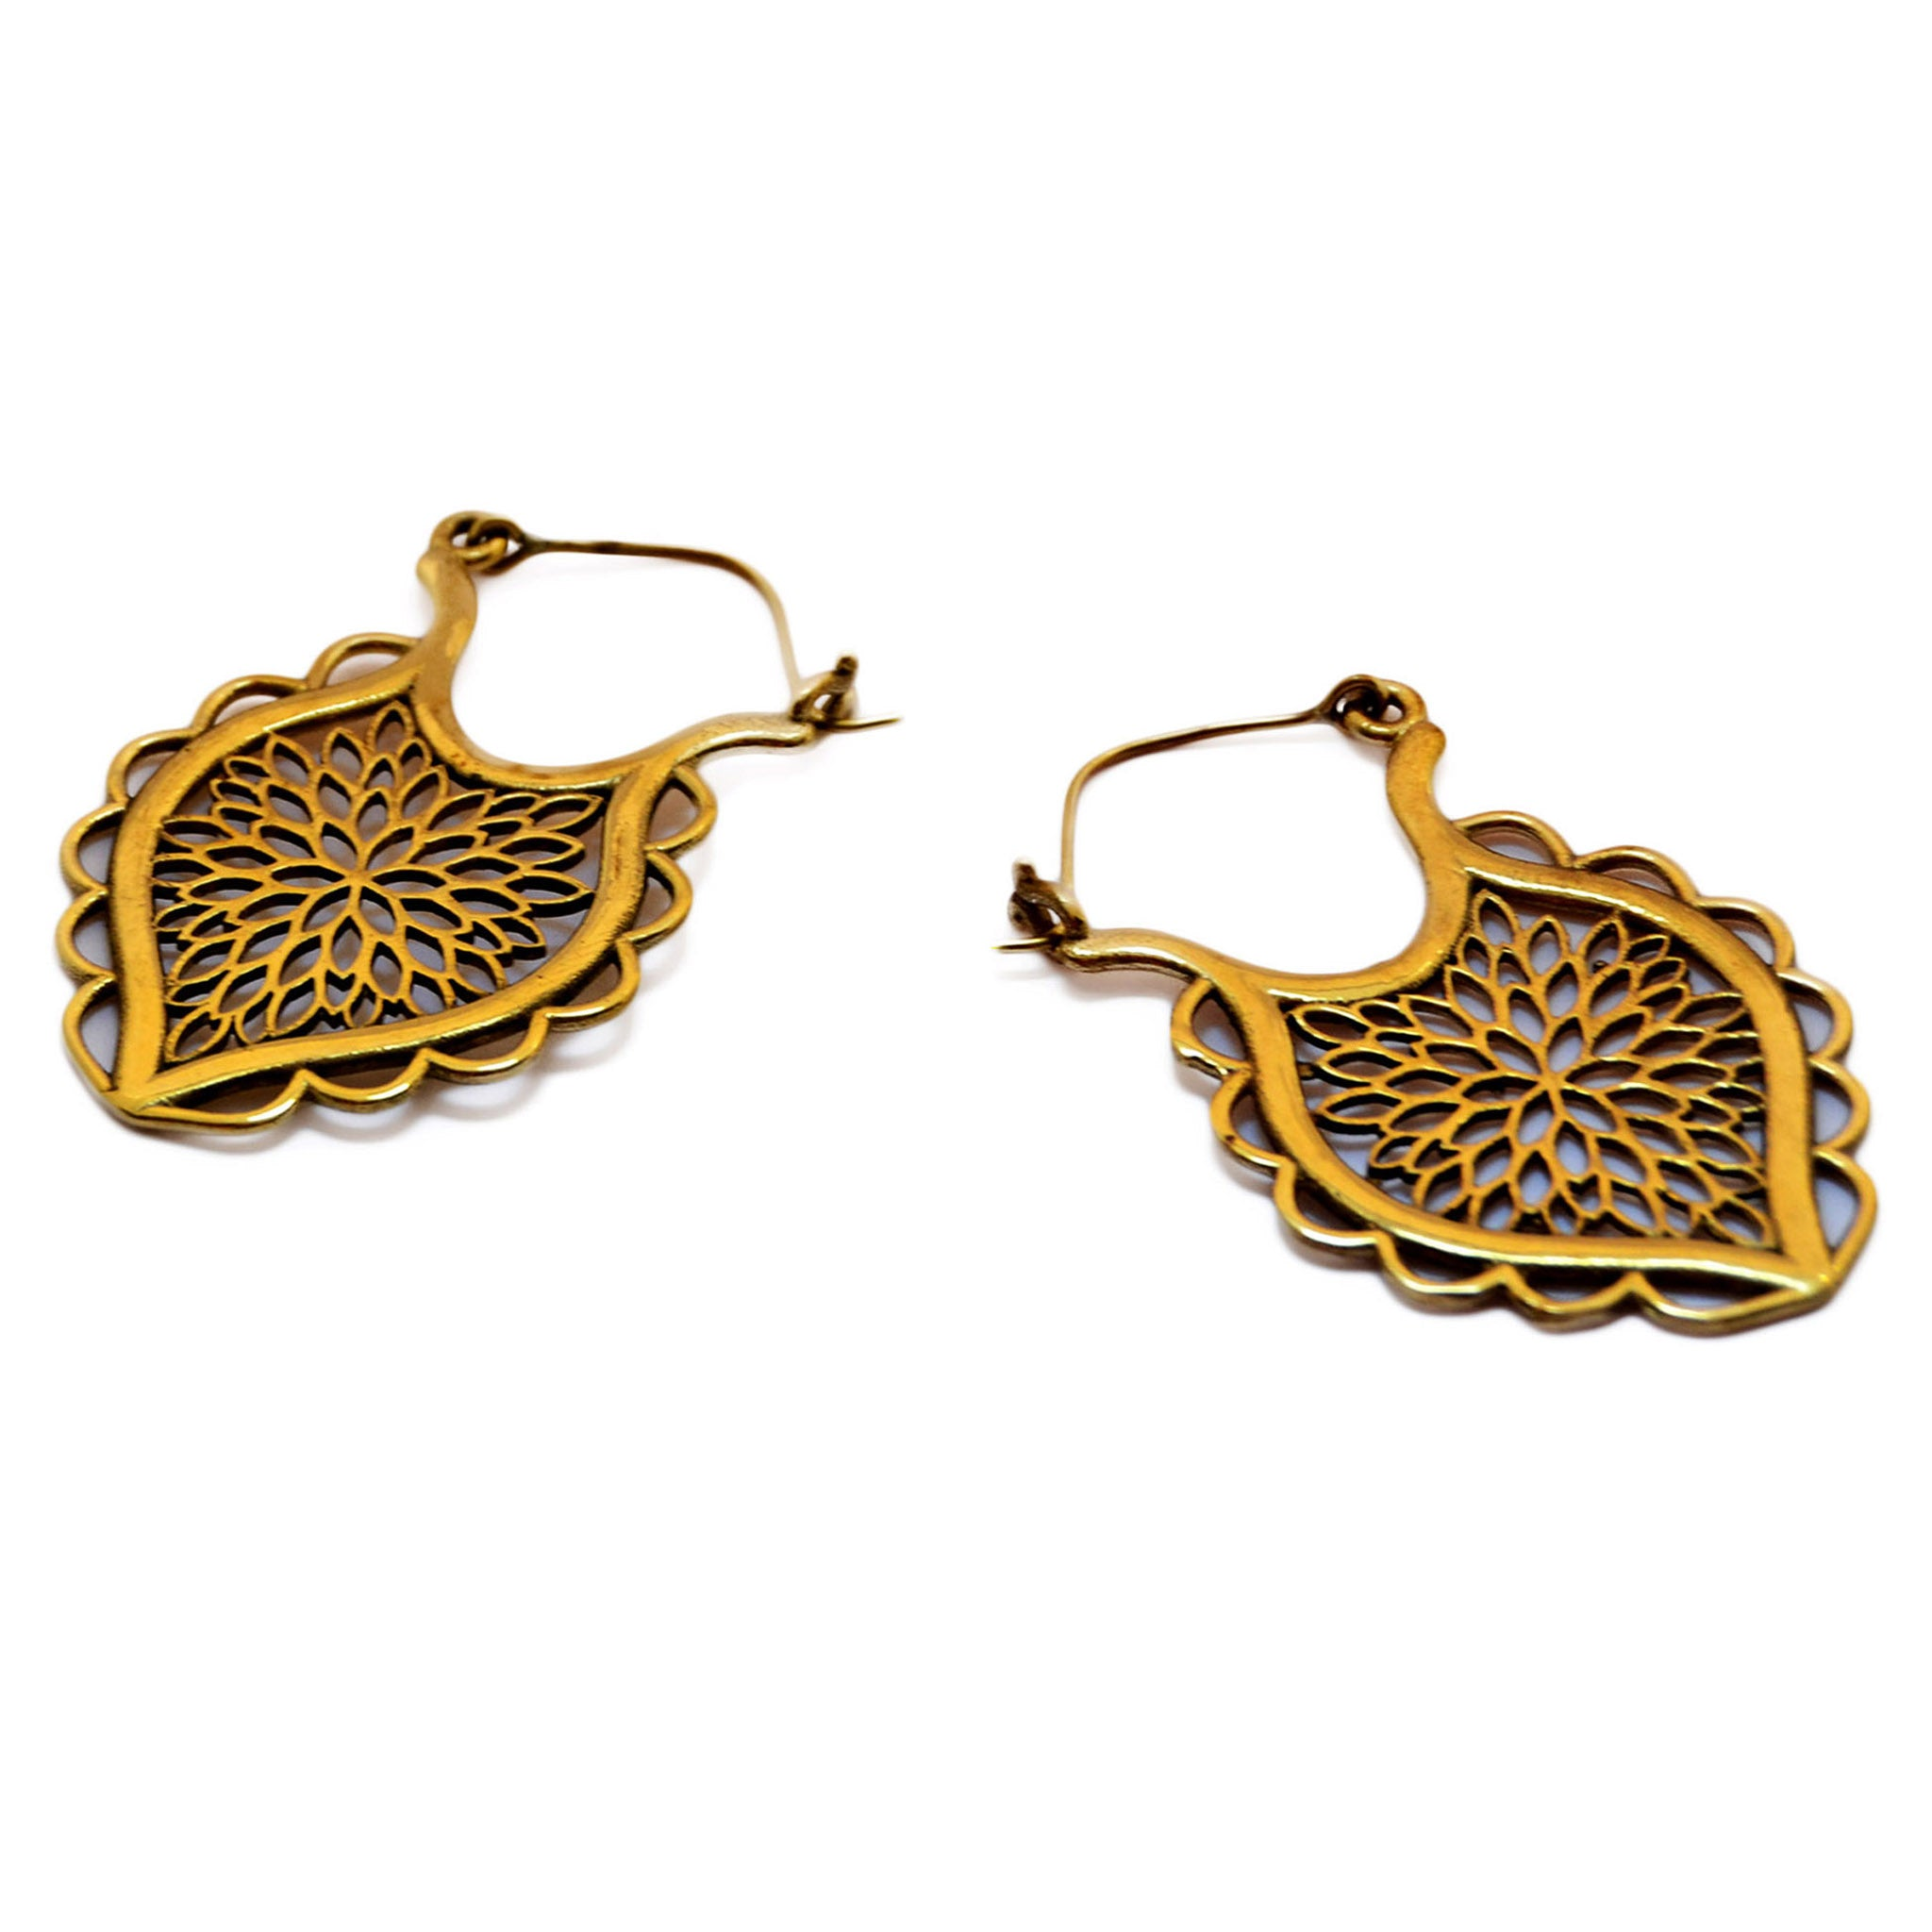 Belly dance earrings